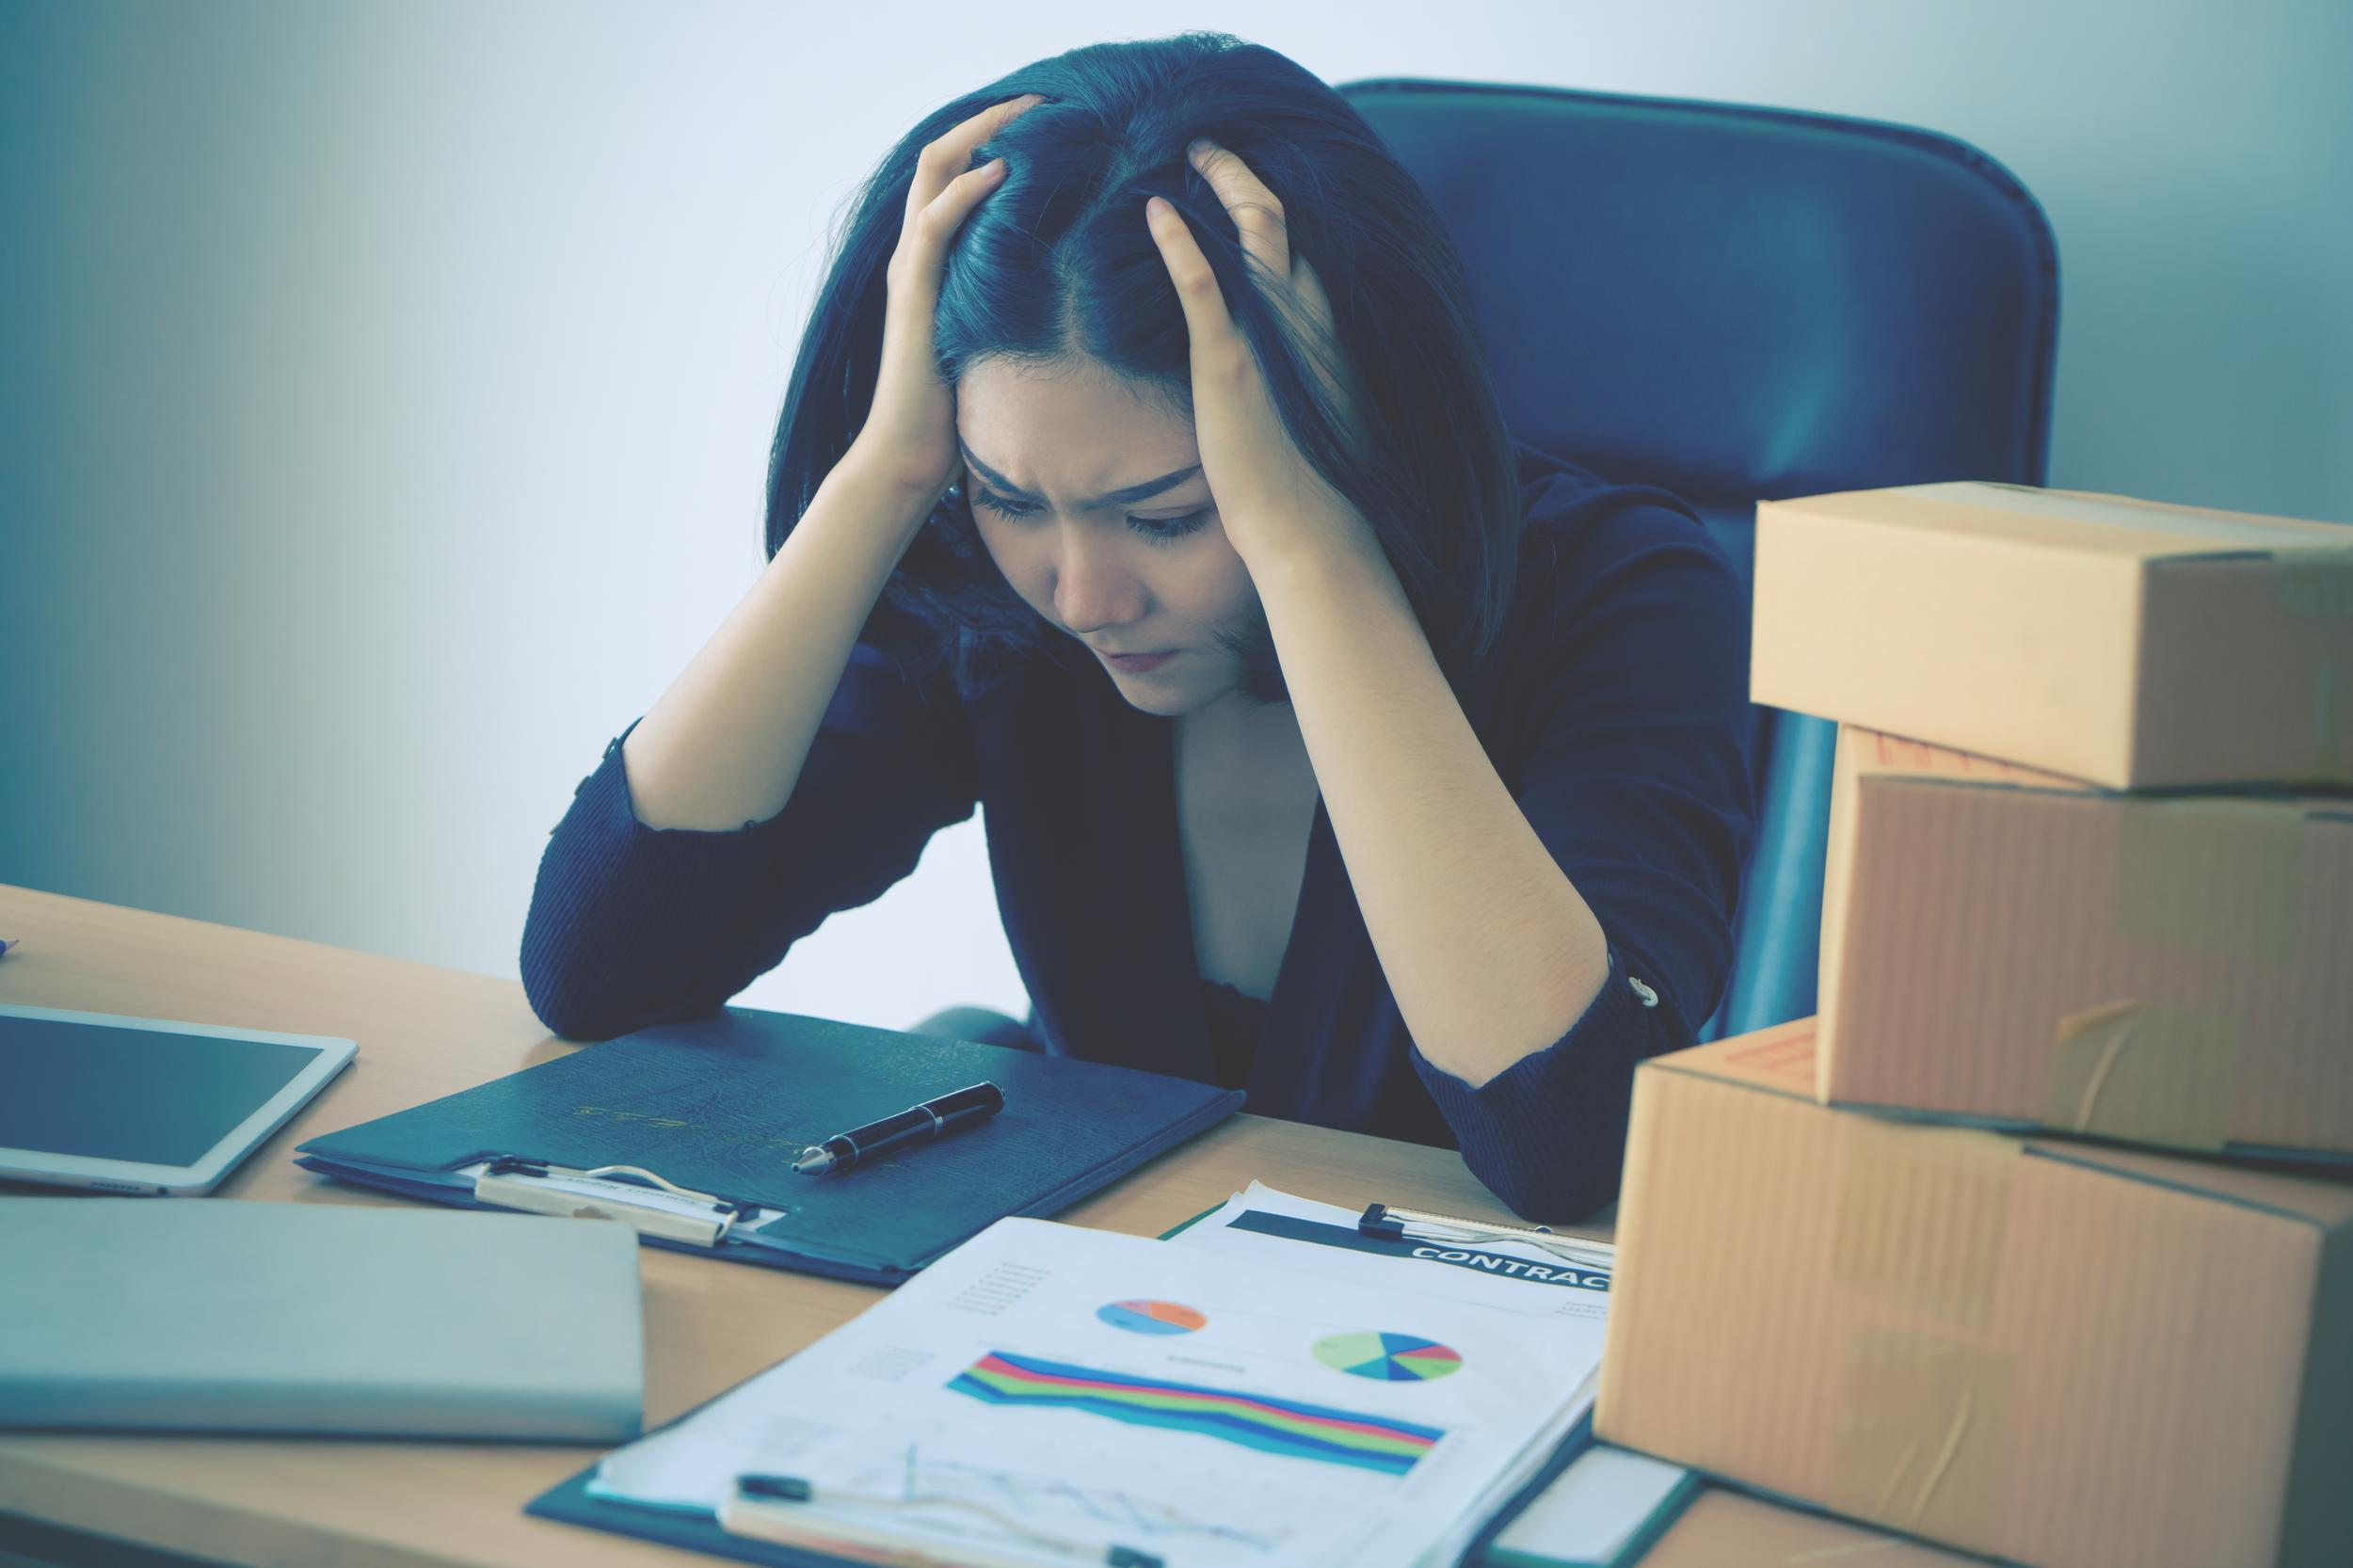 Start up business woman is stressing out on sale report for her start up business